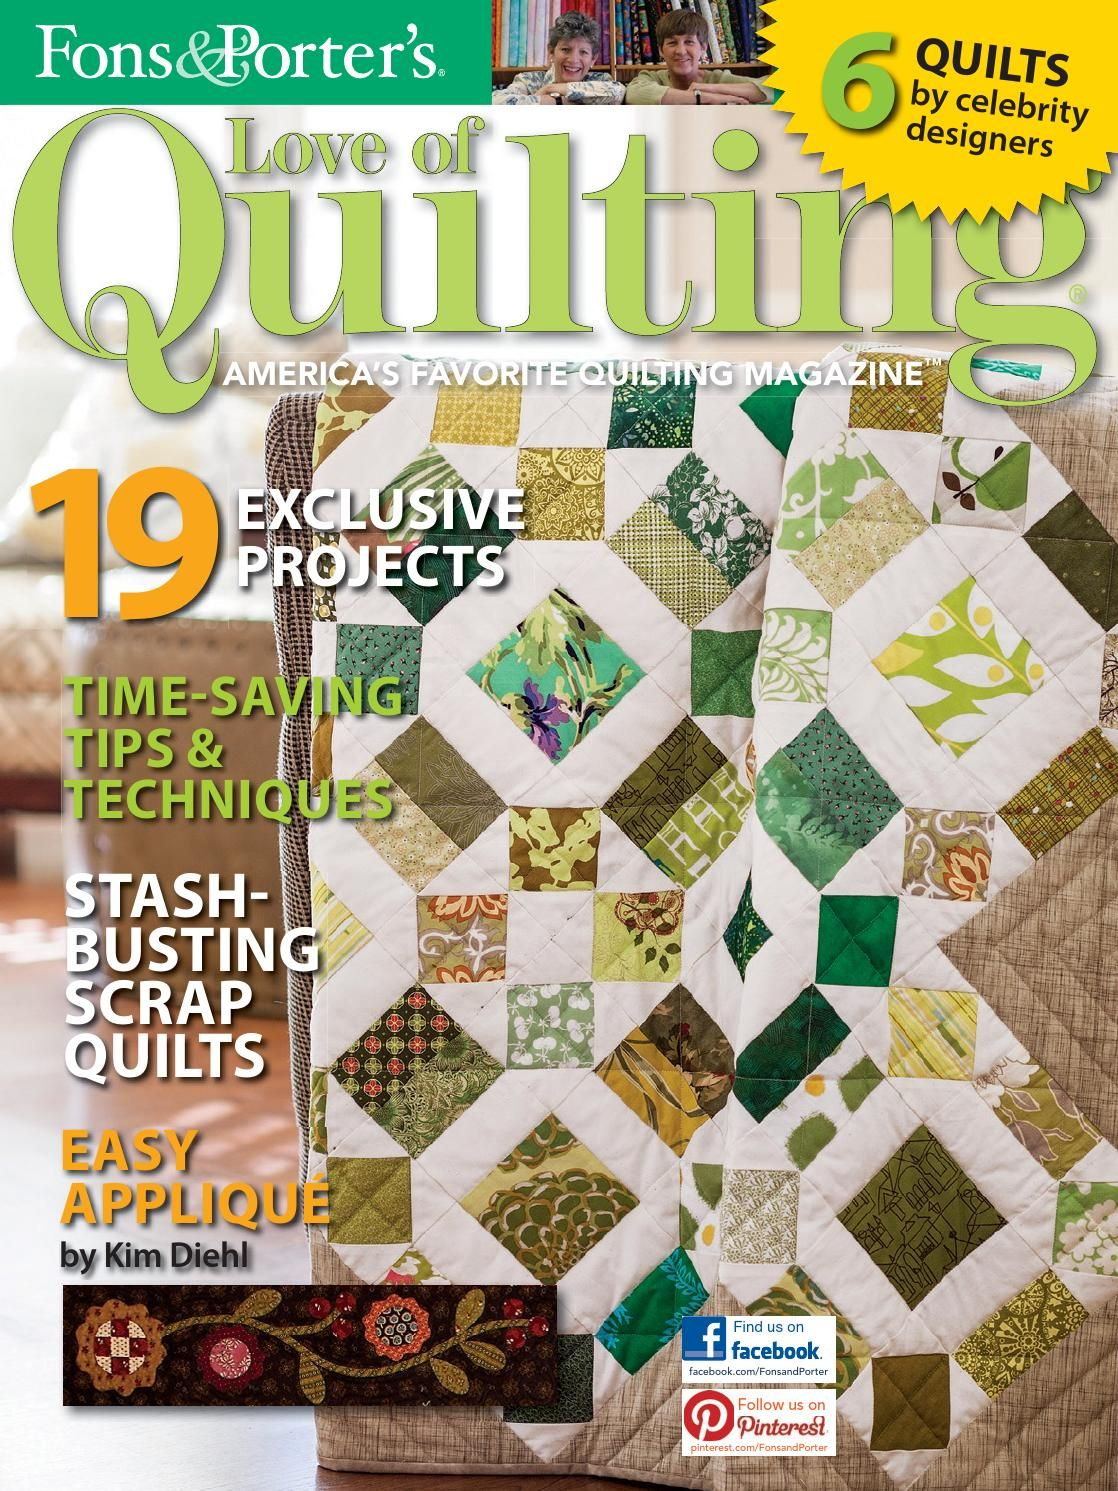 Love of quilting 2013'03 04 by Antonique Turman - issuu